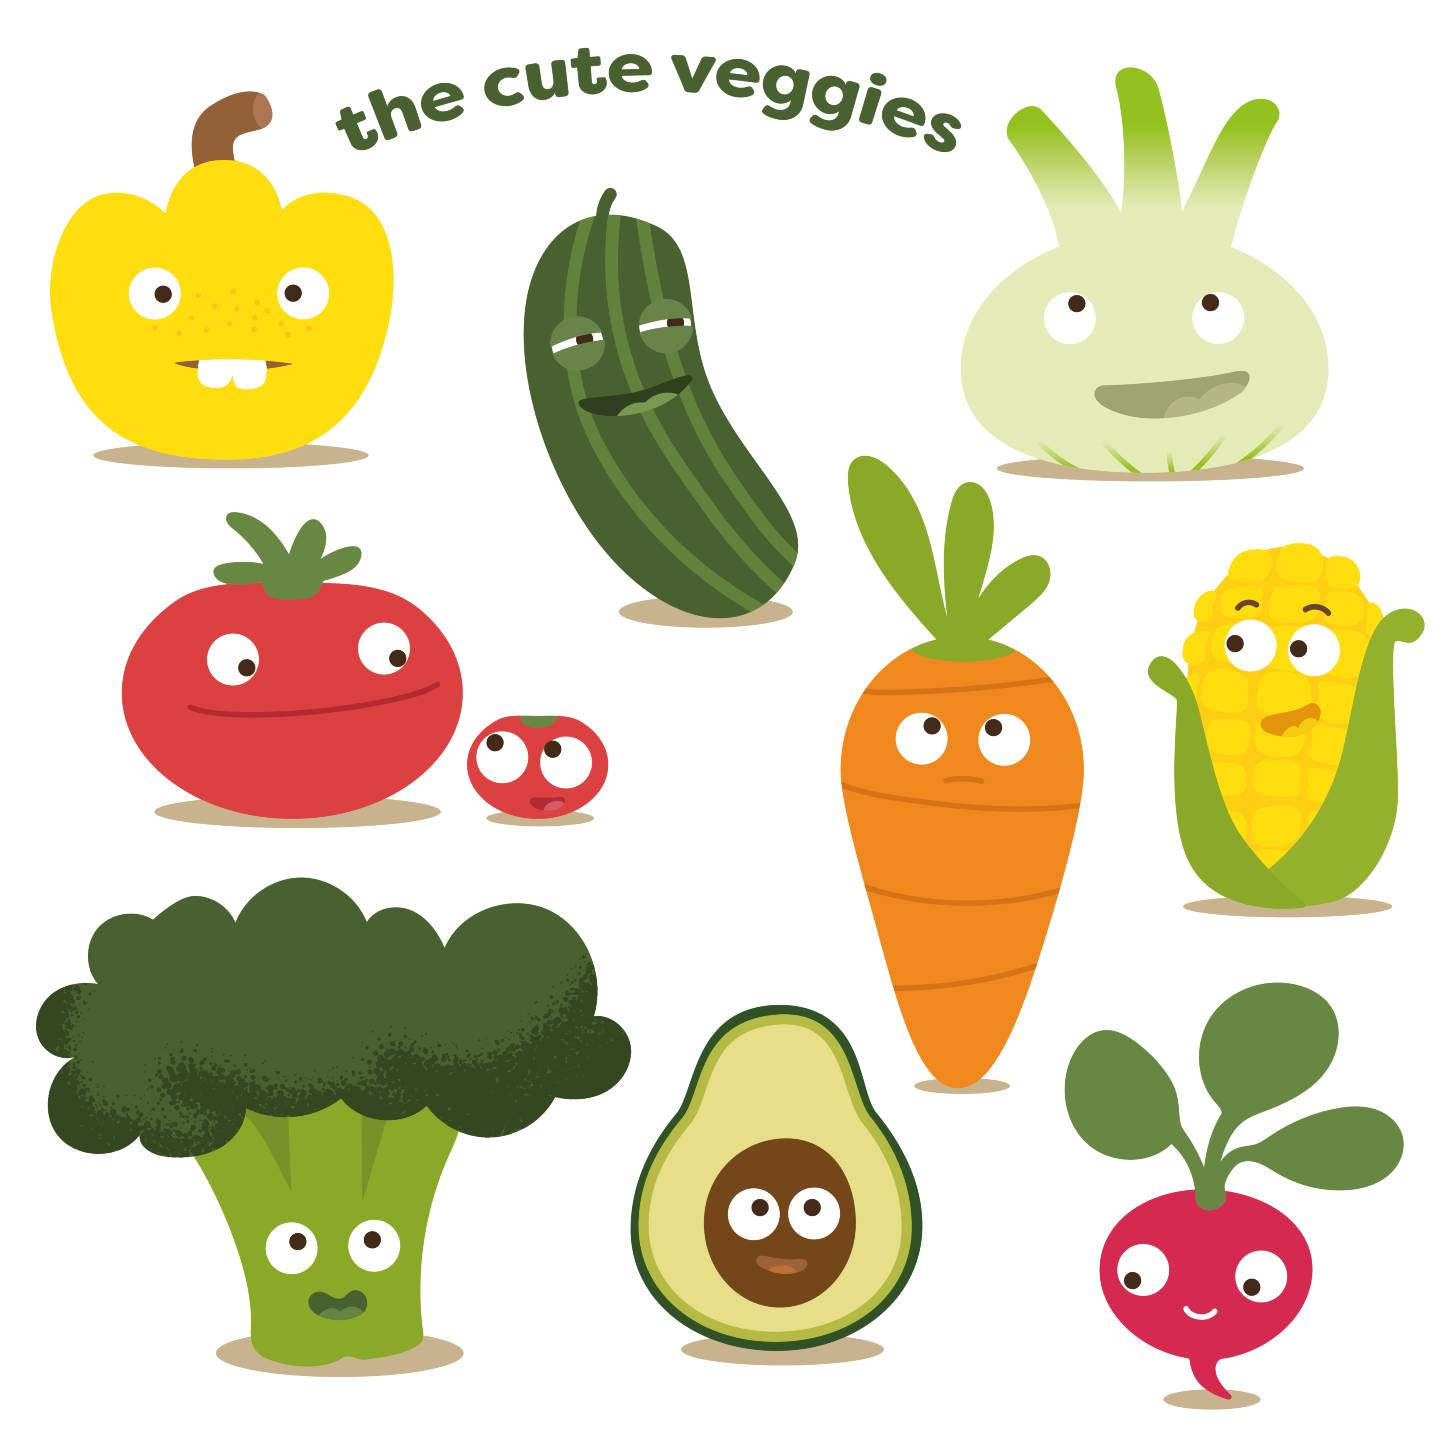 thecuteveggies